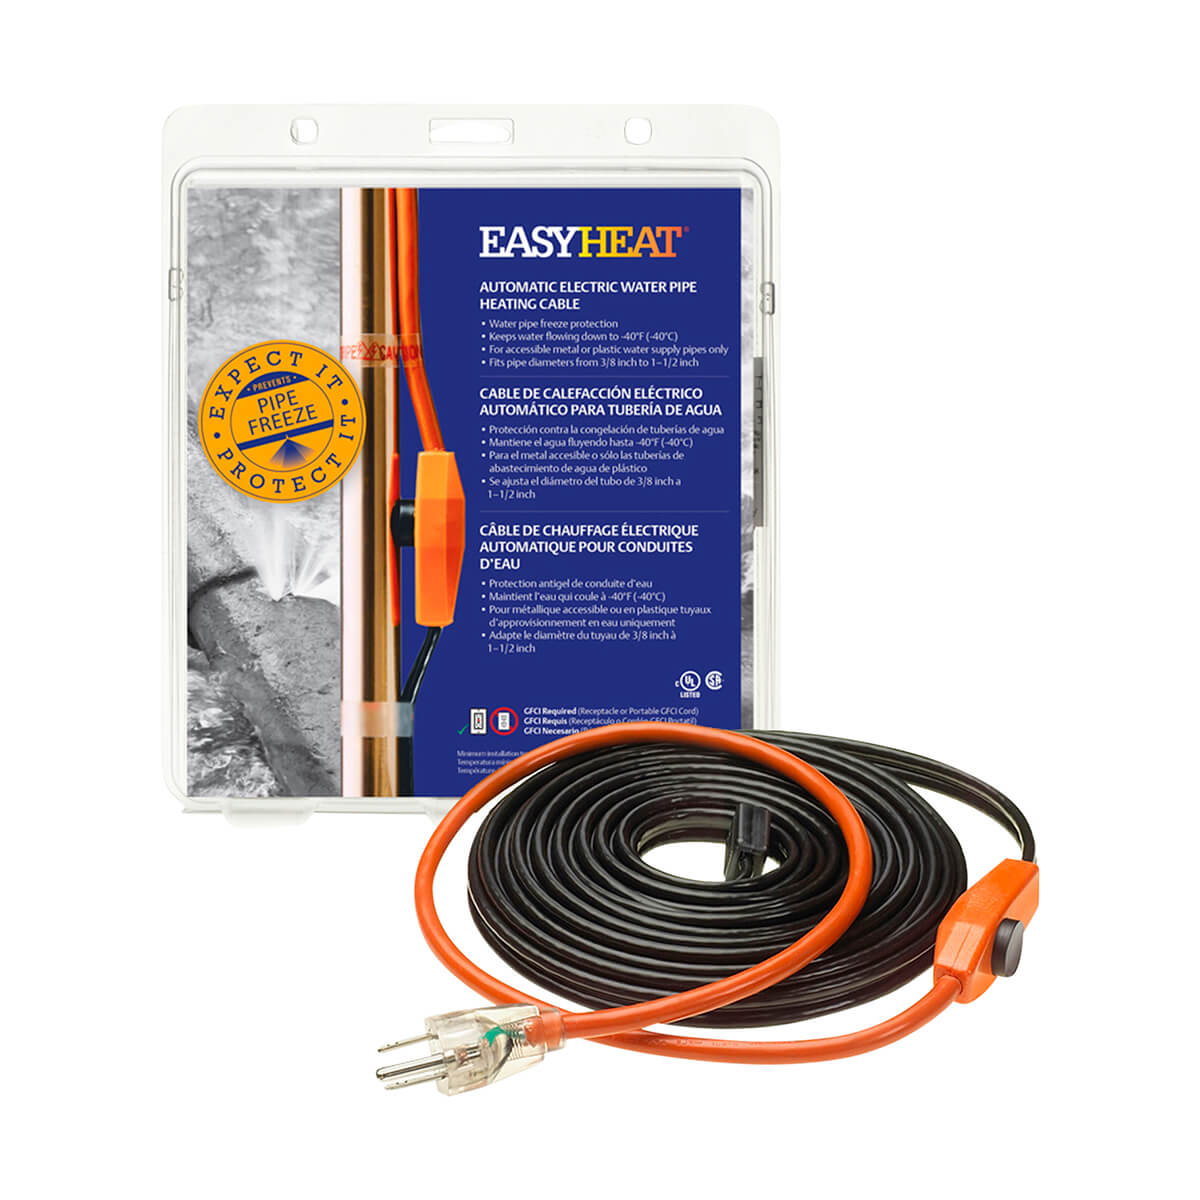 Pipe Heating Cable - 30'